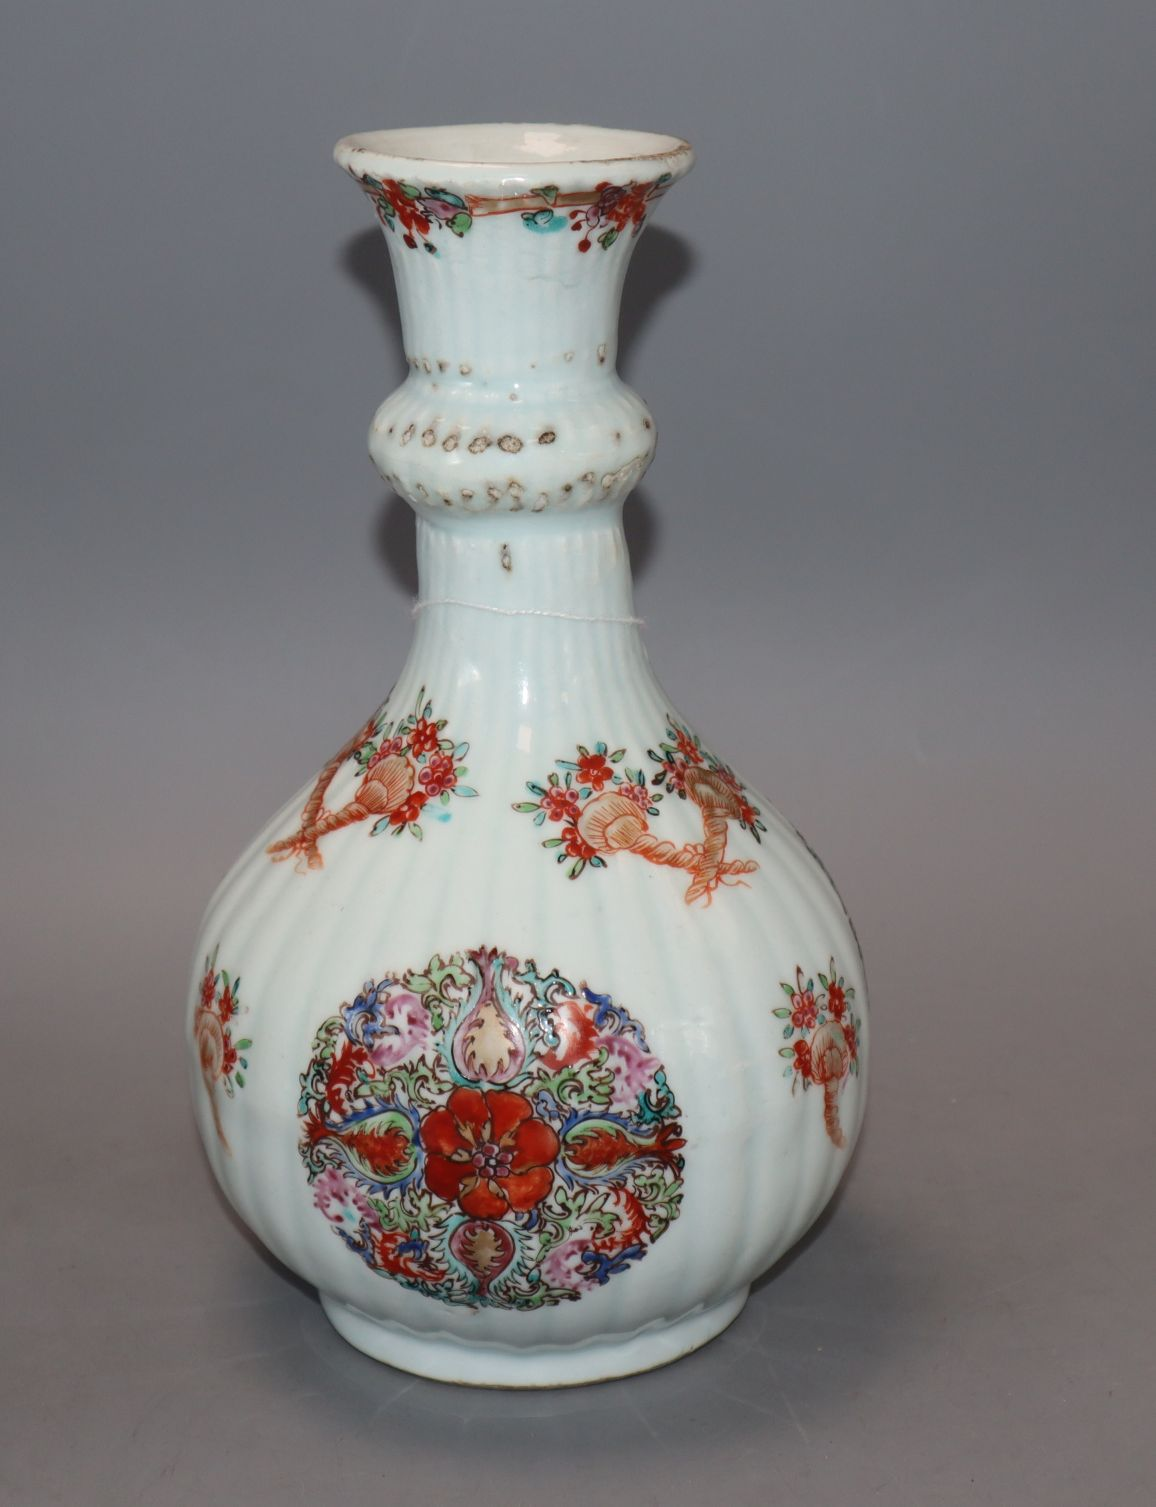 Lot 221 - A Chinese famille rose garlic neck vase, Yongzheng period